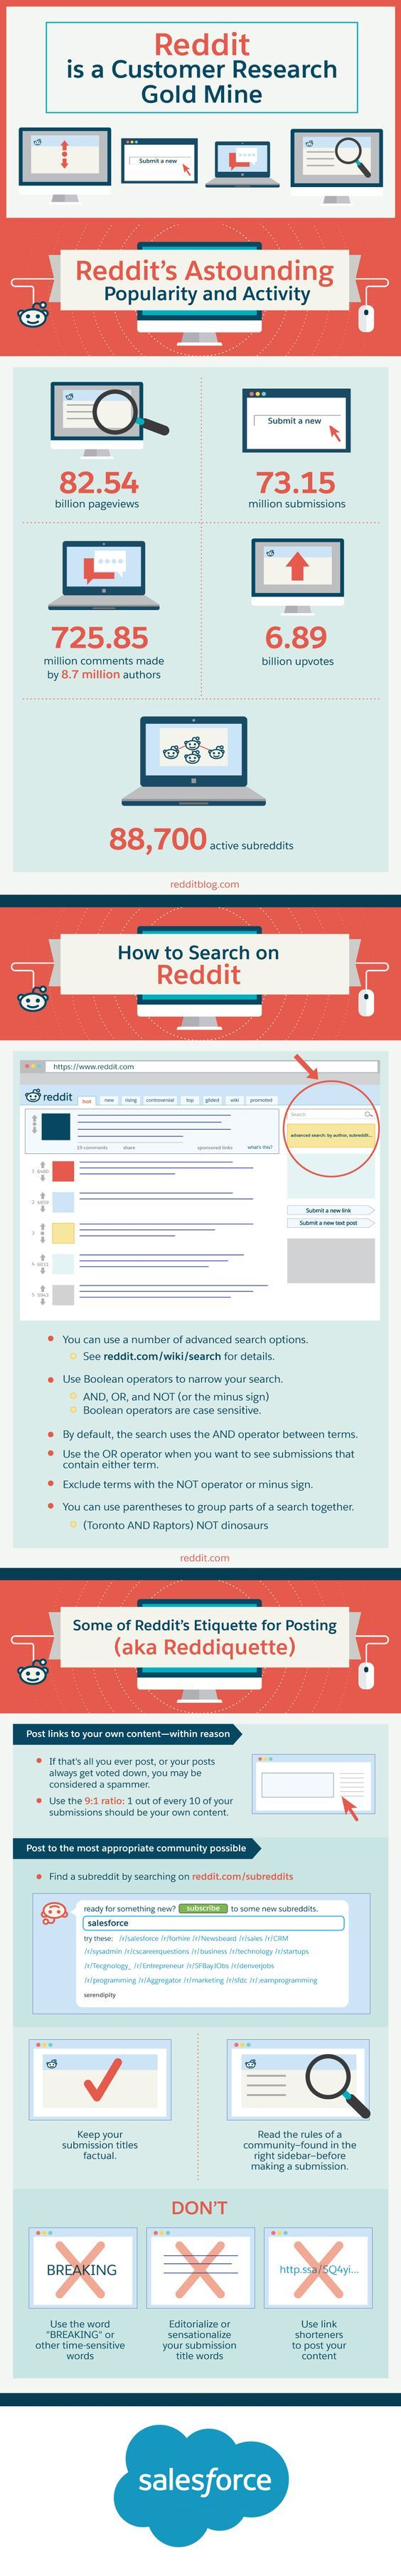 Why Use Reddit for Customer Research infographic